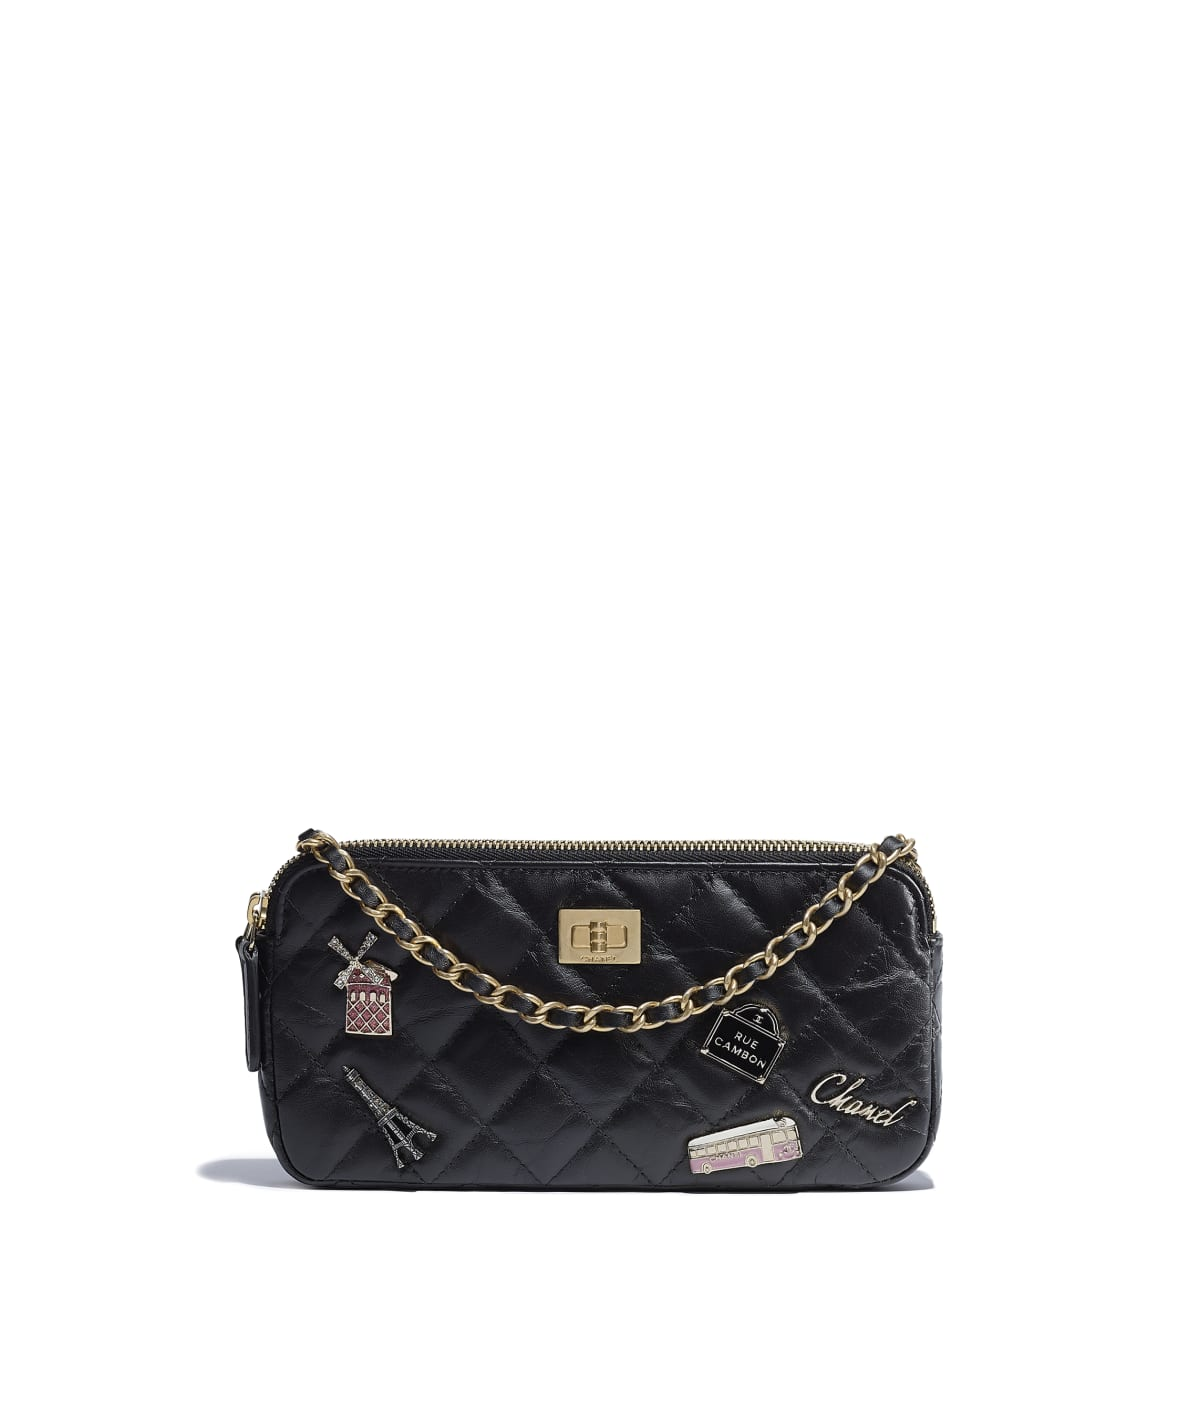 9e8856522b 255-clutch-with-chain by chanel